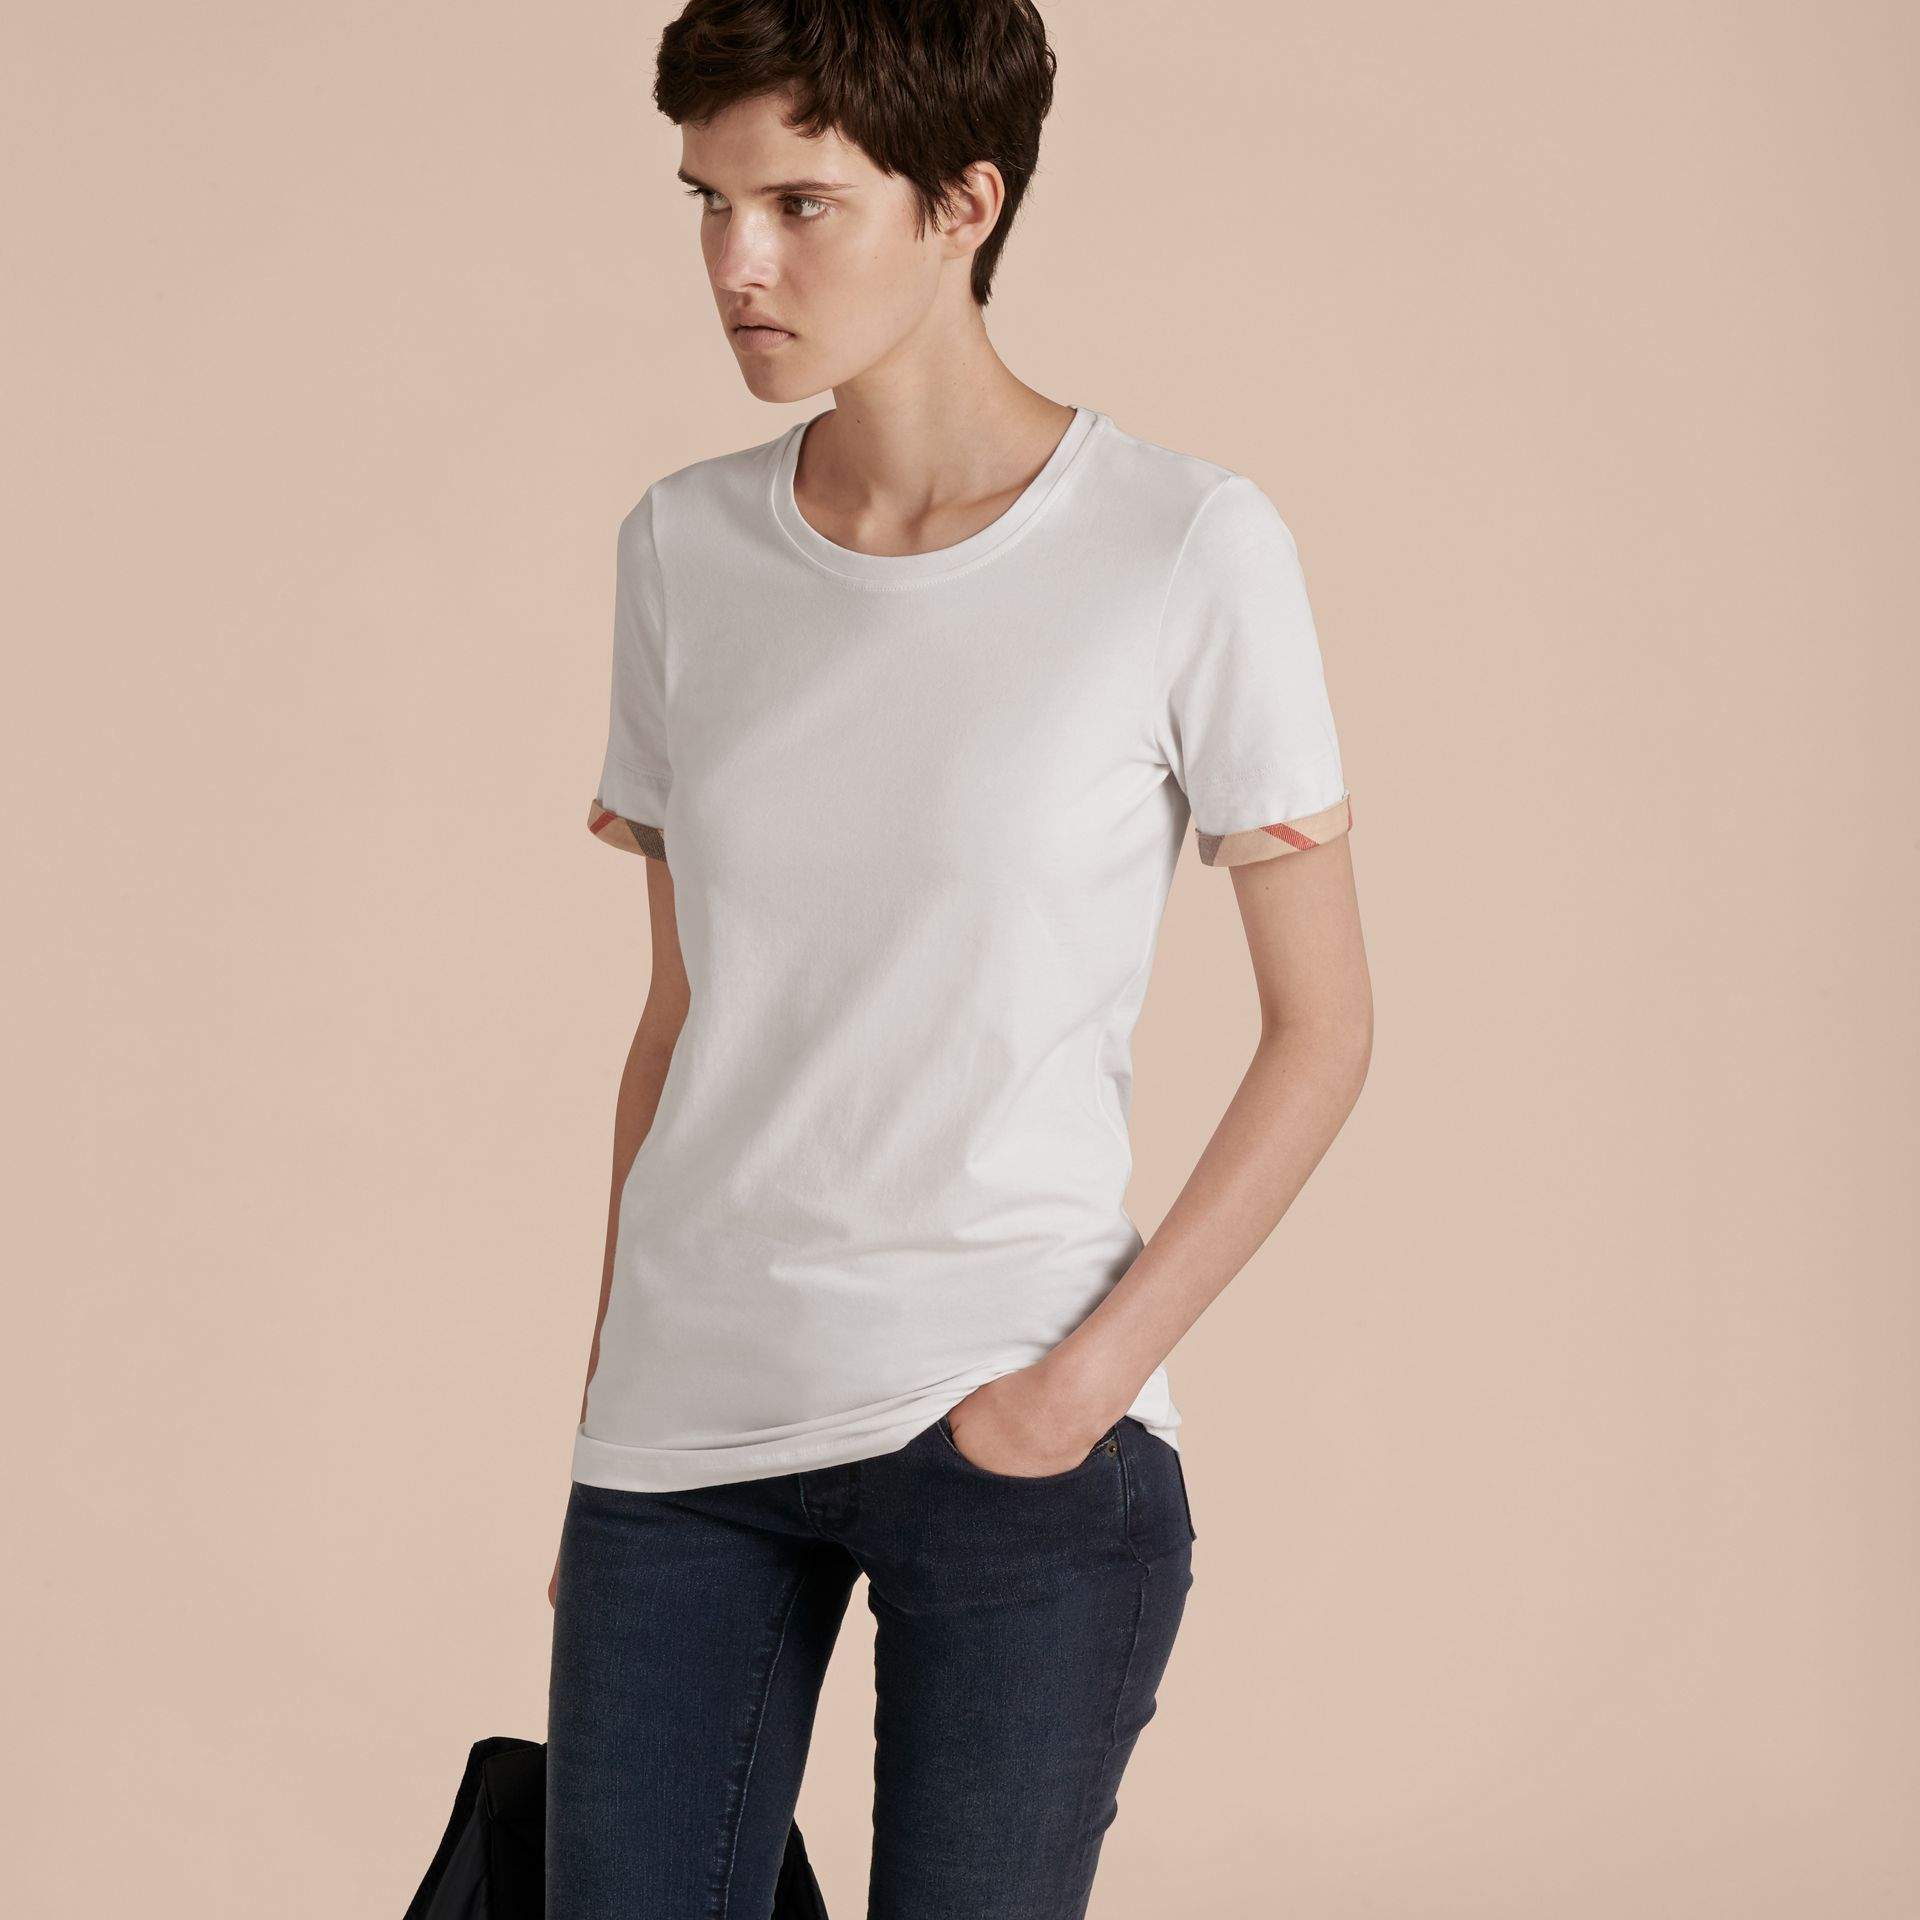 Check Cuff Stretch Cotton T-Shirt in White - Women | Burberry - gallery image 10